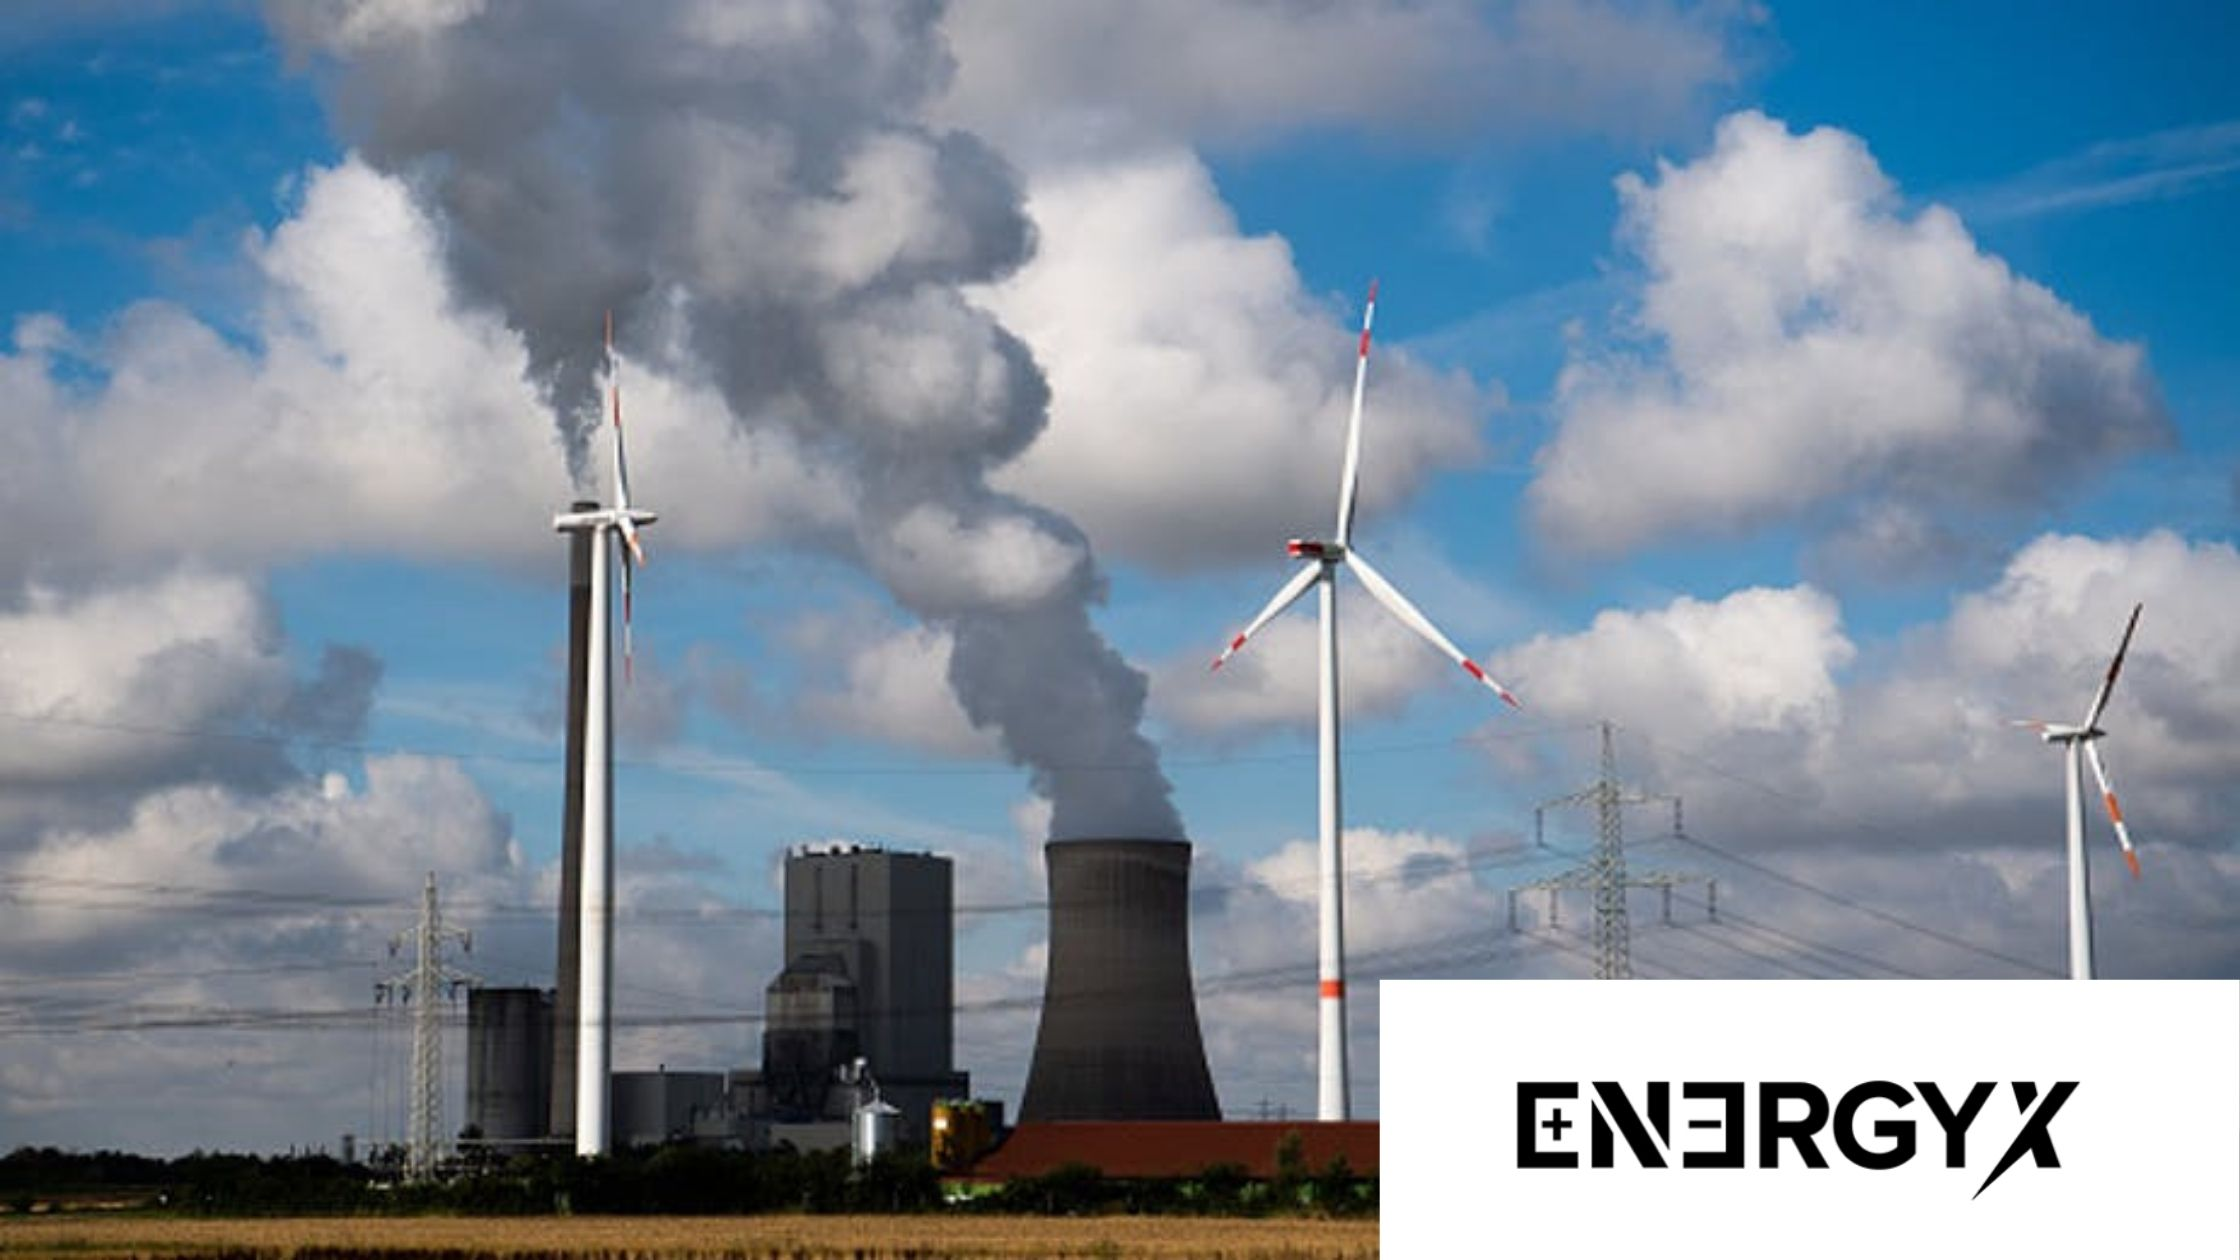 Wind turbines at the Mehrum coal-fired power station in the Peine district in Lower Saxony, Mehrum. The phase-out of coal is planned by 2038. Julian Stratenschulte via GettyImages